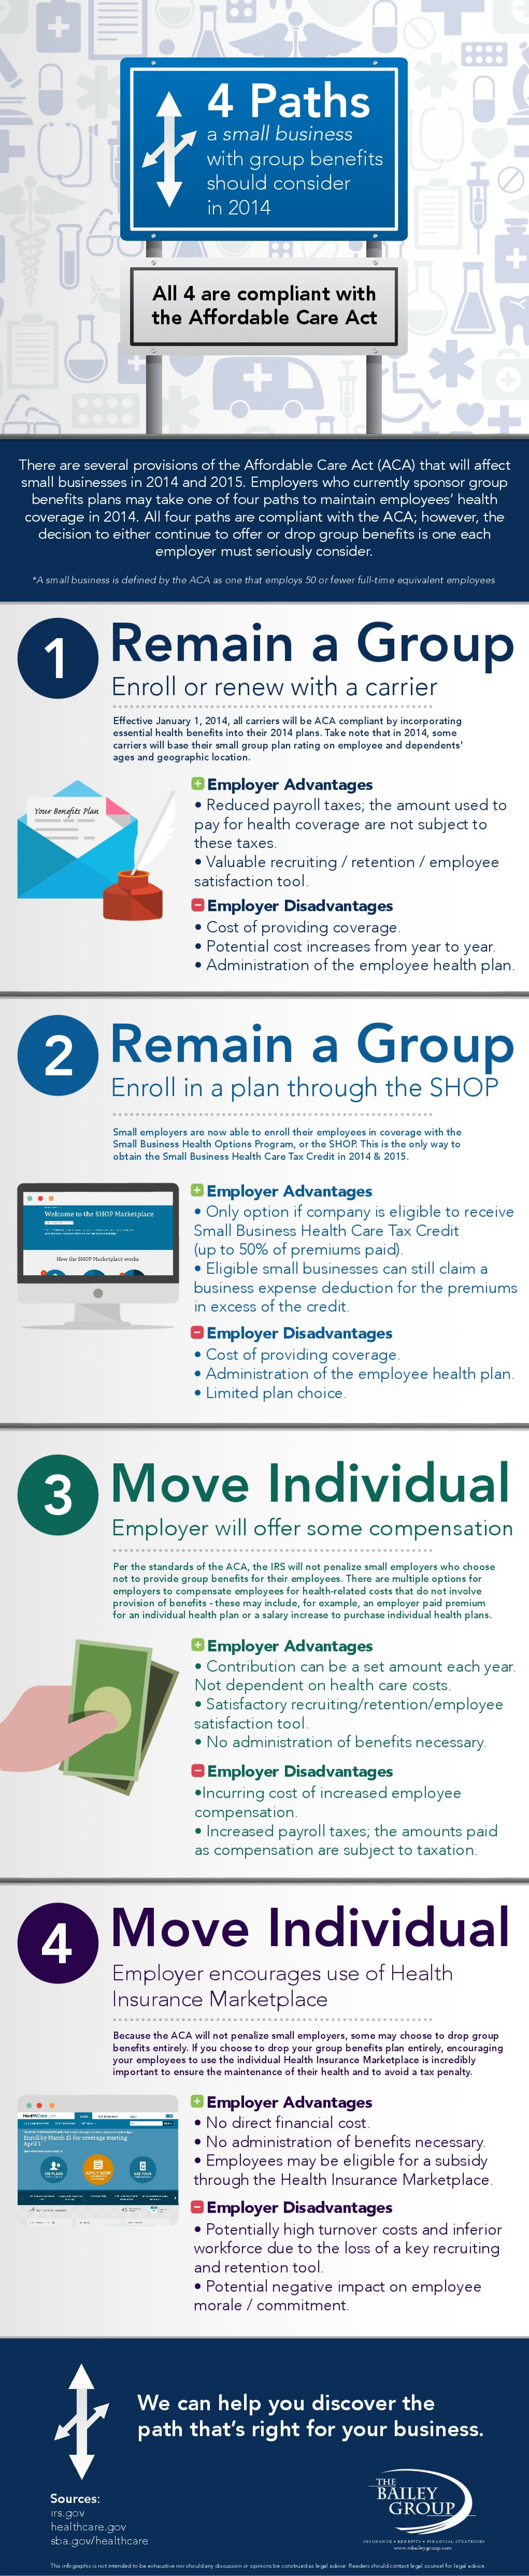 4 Paths a Small Business With Group Benefits Should Consider in 2014 Infographic